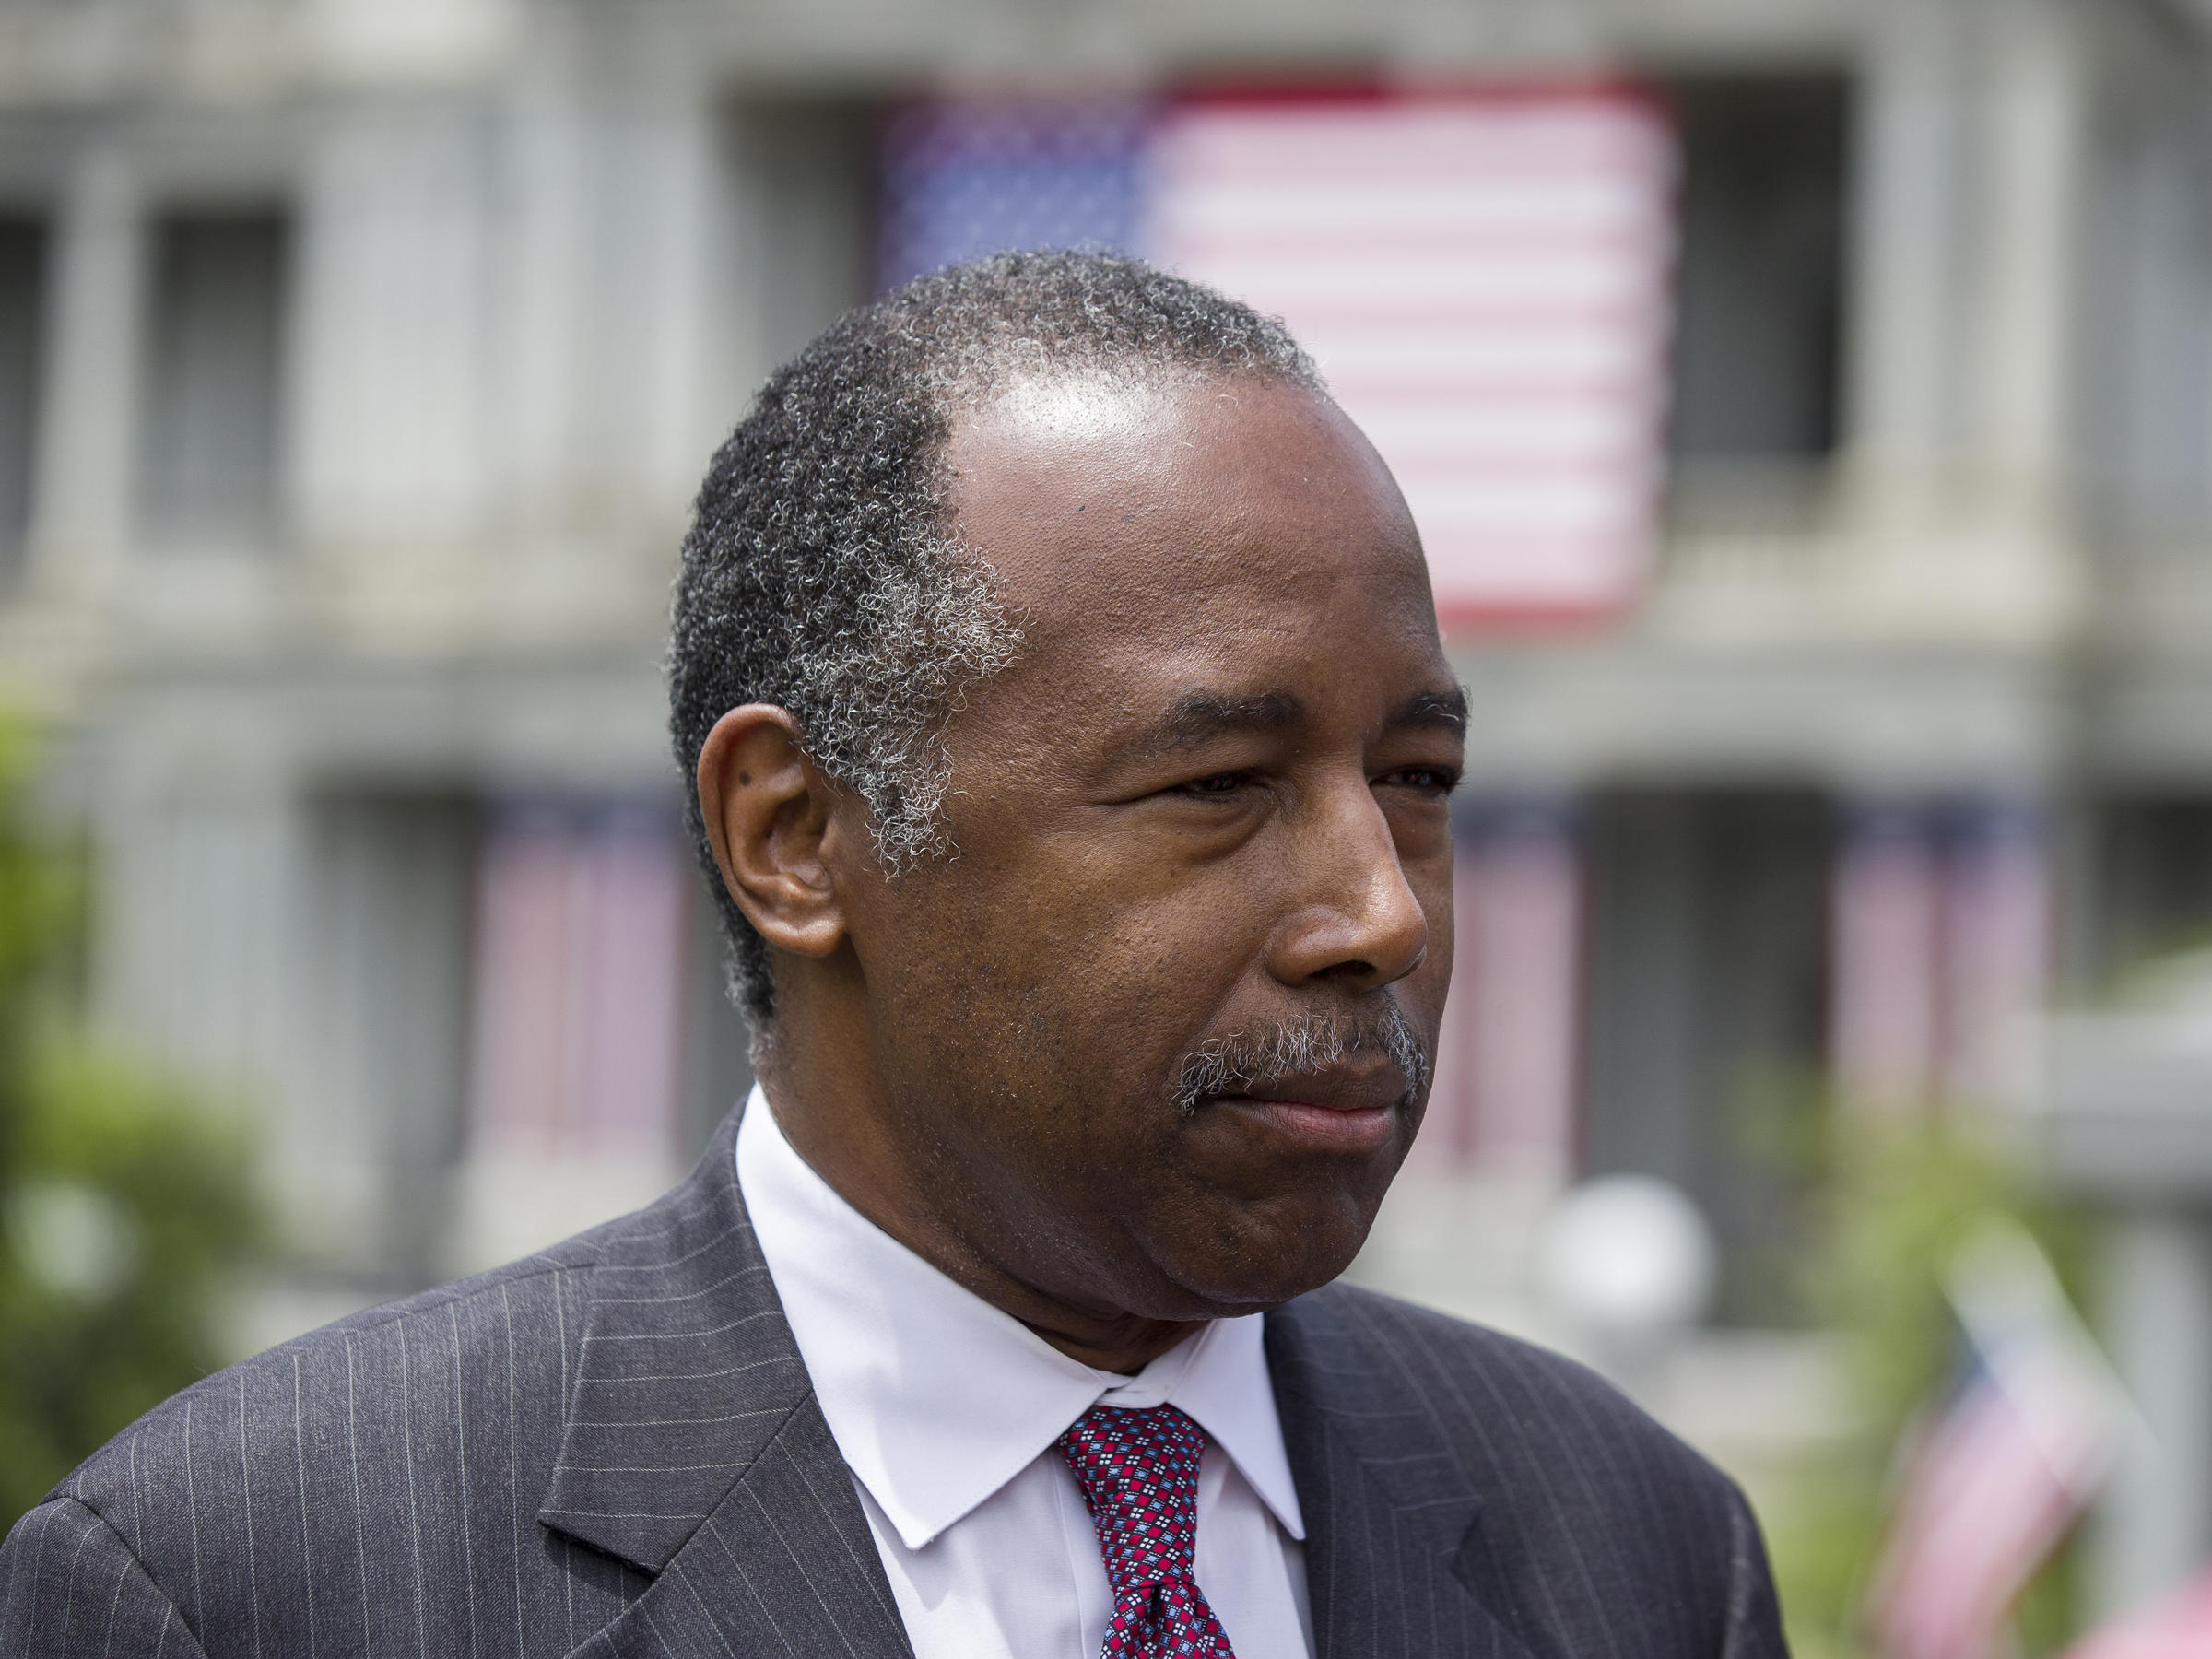 HUD Secretary Carson Compares Baltimore's Problems to Cancer